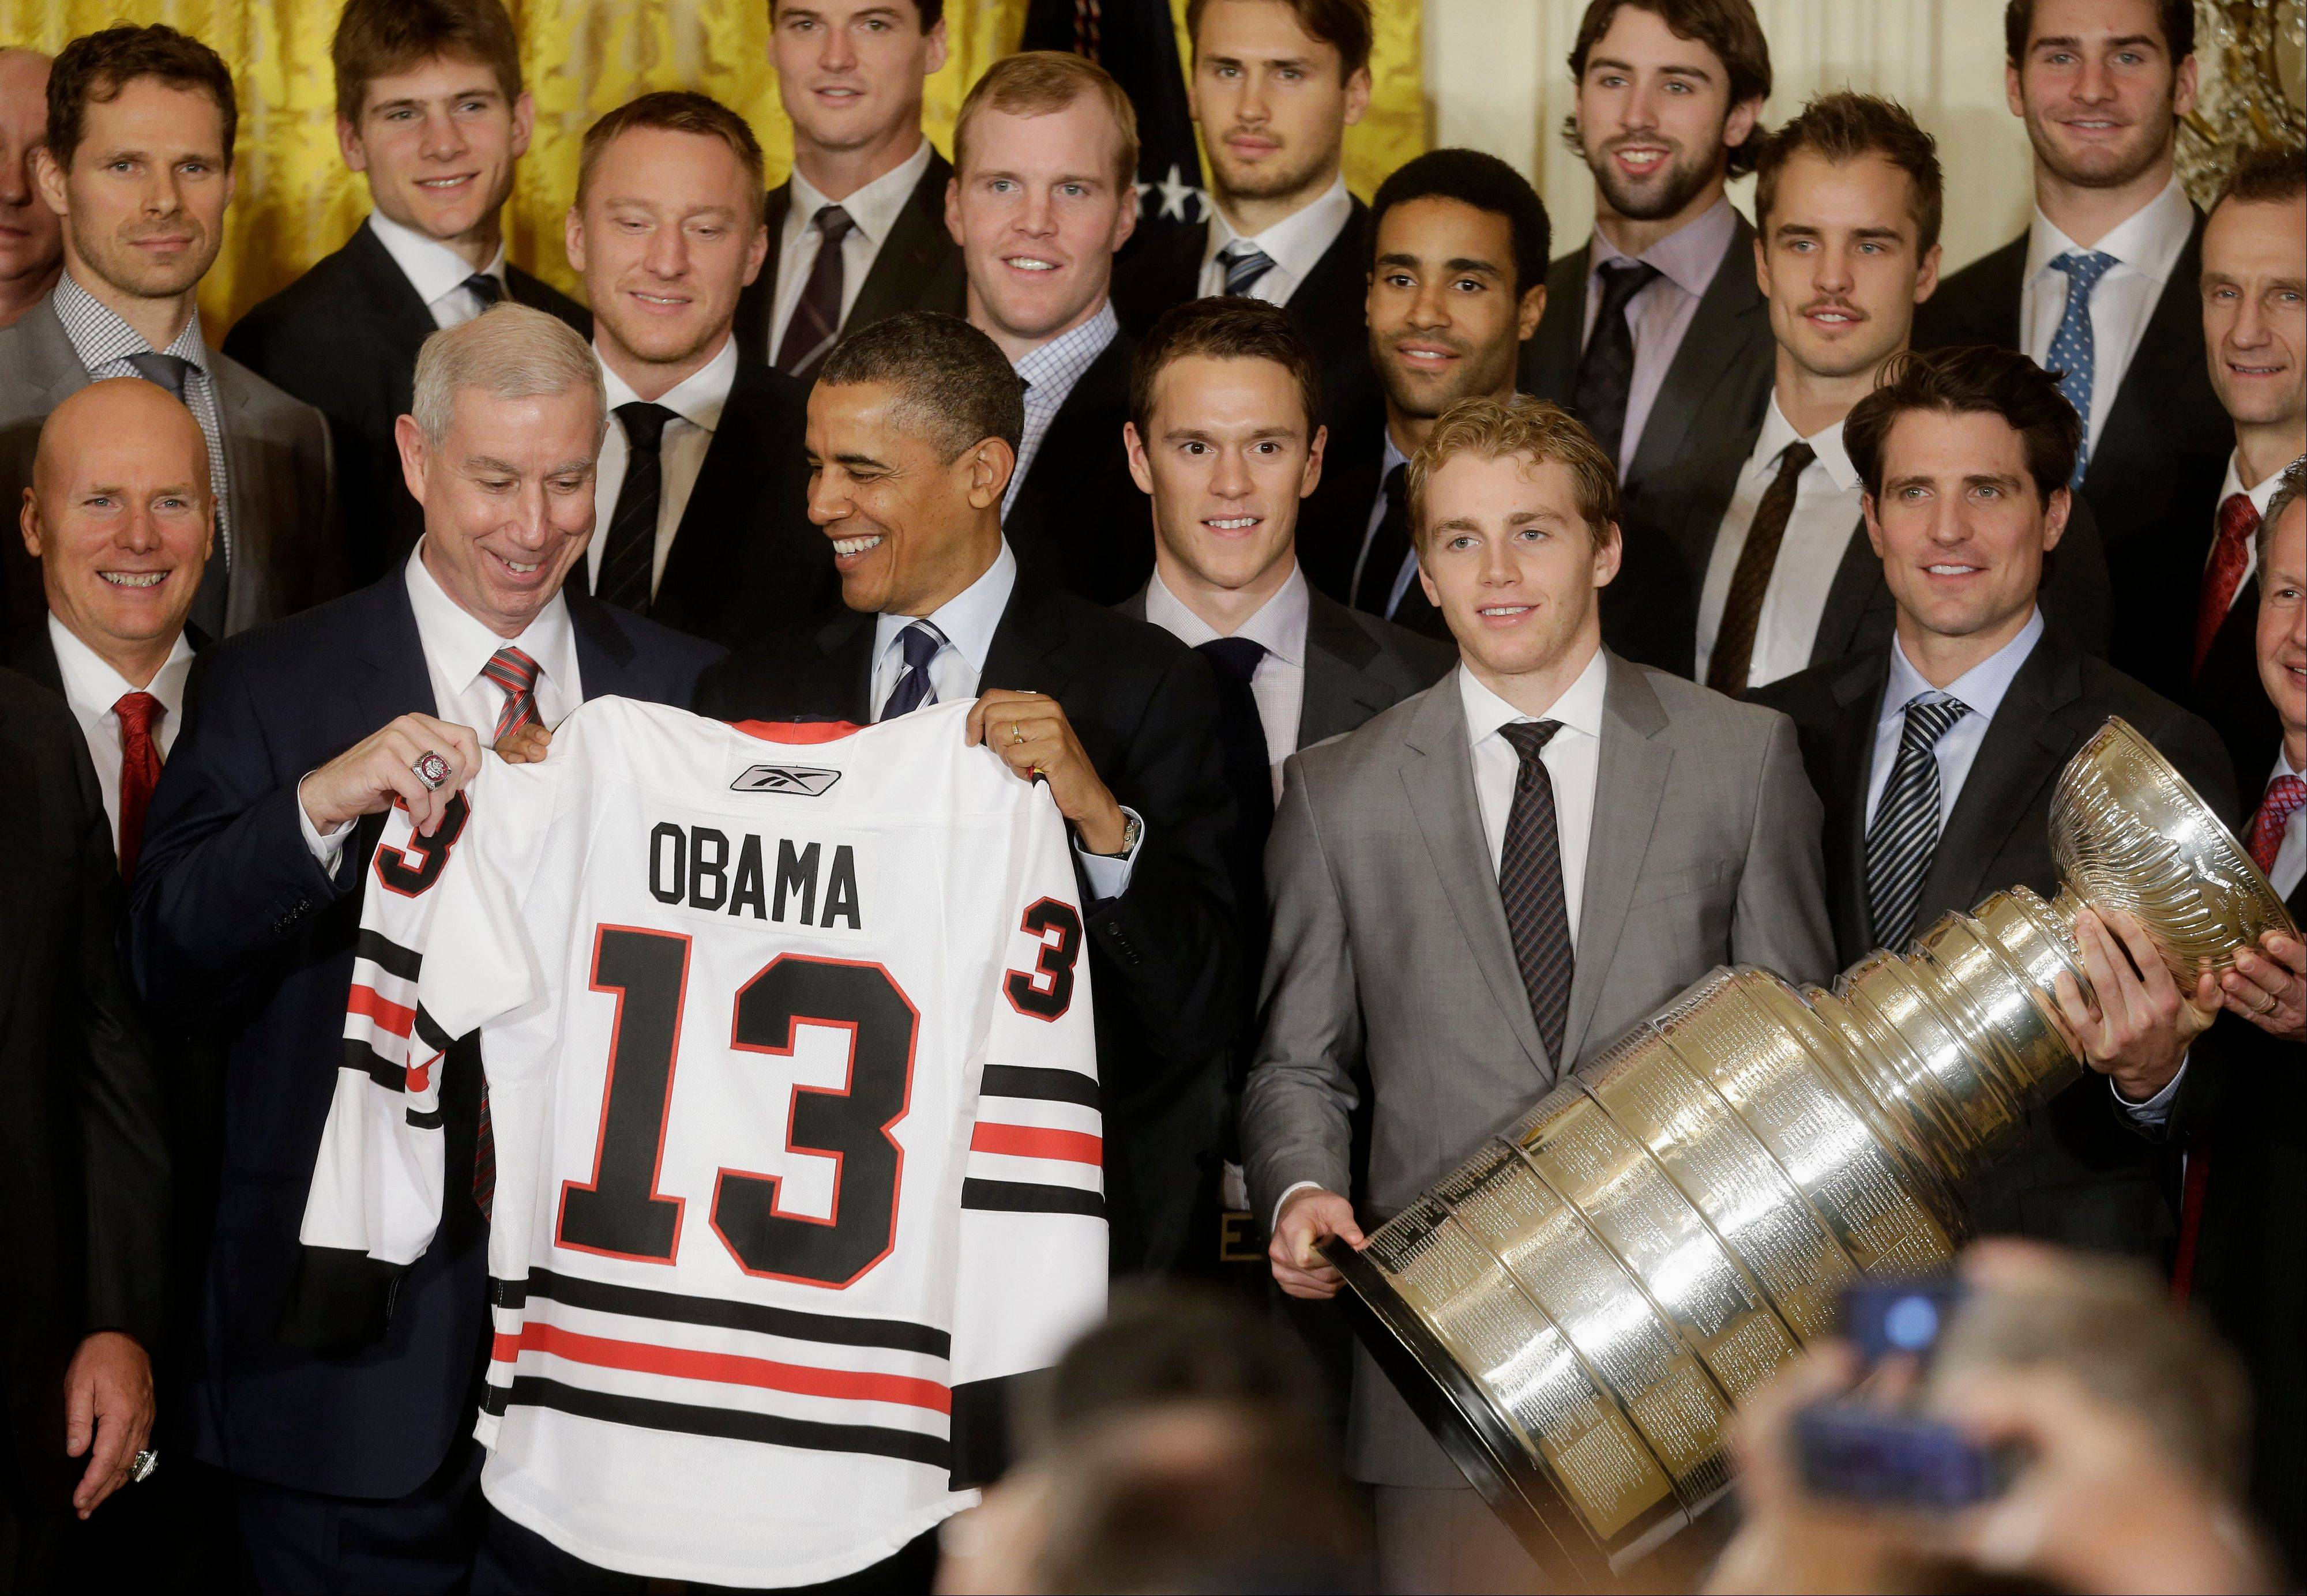 Chicago Blackhawks President and CEO John McDonough, left, presents President Barack Obama with a Chicago Blackhawks hockey jersey during a ceremony in the East Room of the White House Monday to honor the NHL 2013 Stanley Cup champions. Team captain Jonathan Toews is at center, and Patrick Kane and Patrick Sharp, right, hold the Stanley Cup.